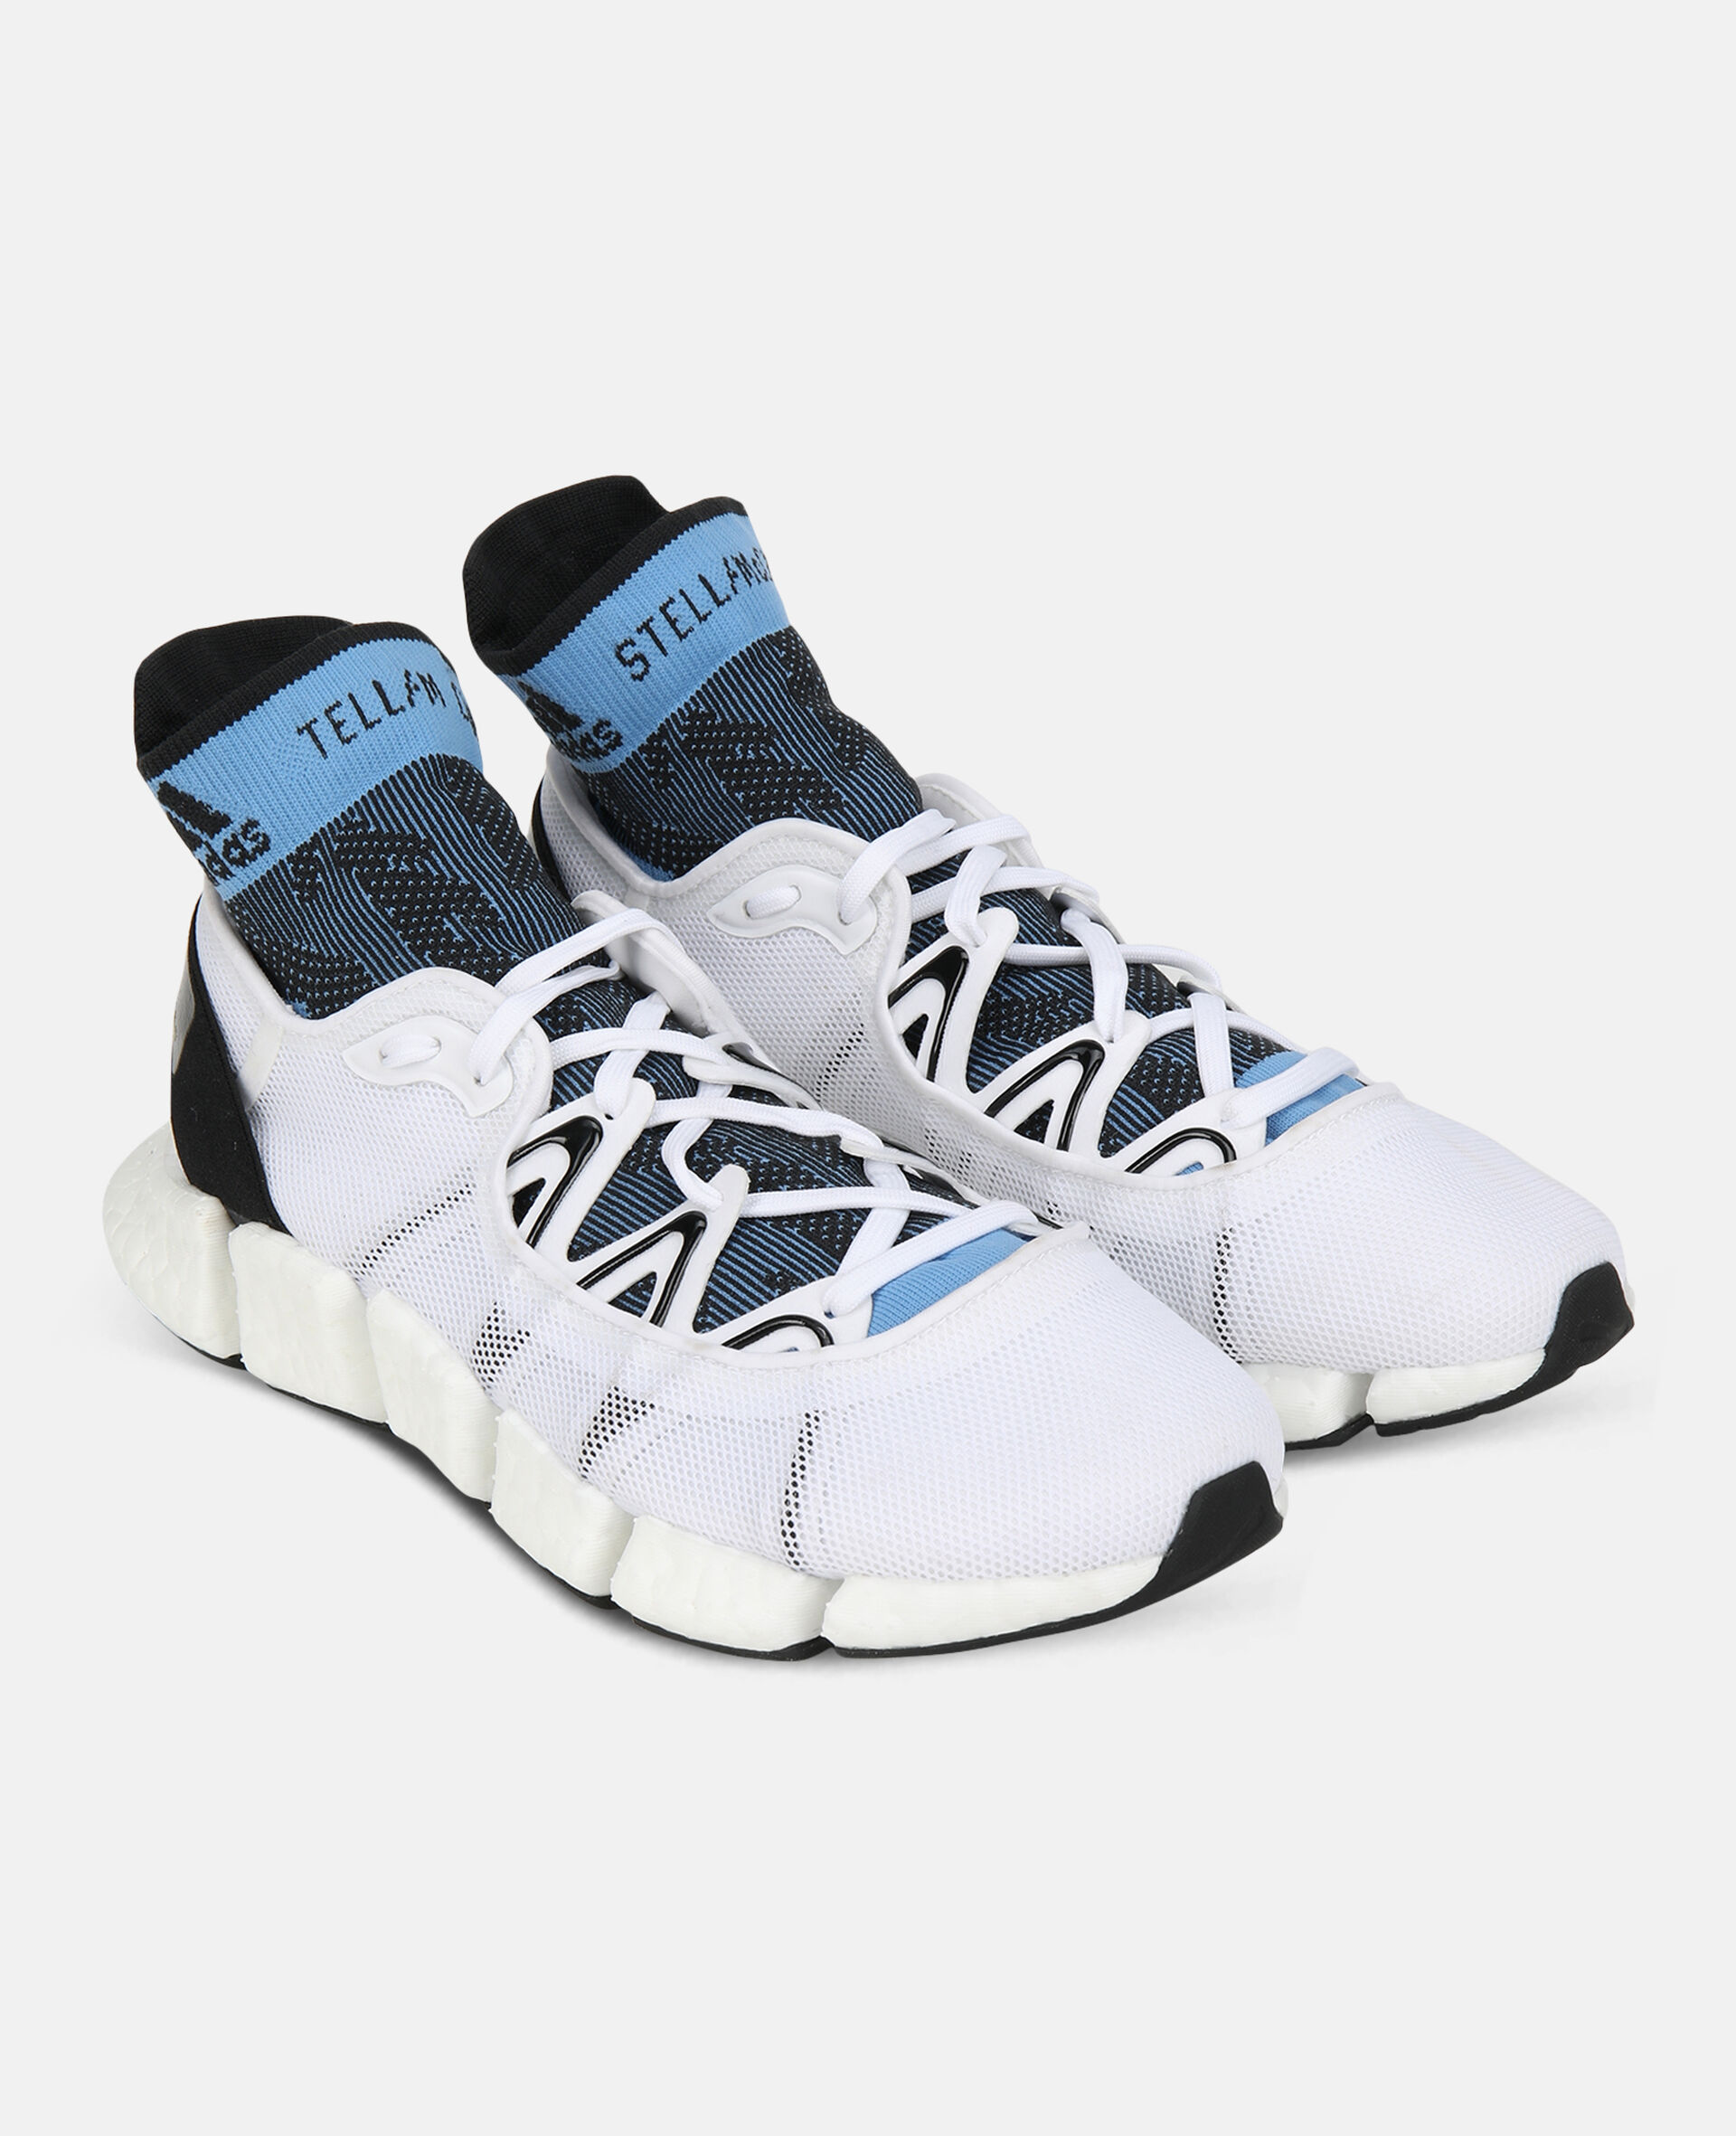 Climacool Vento 3-in-1 Sneakers -White-large image number 1